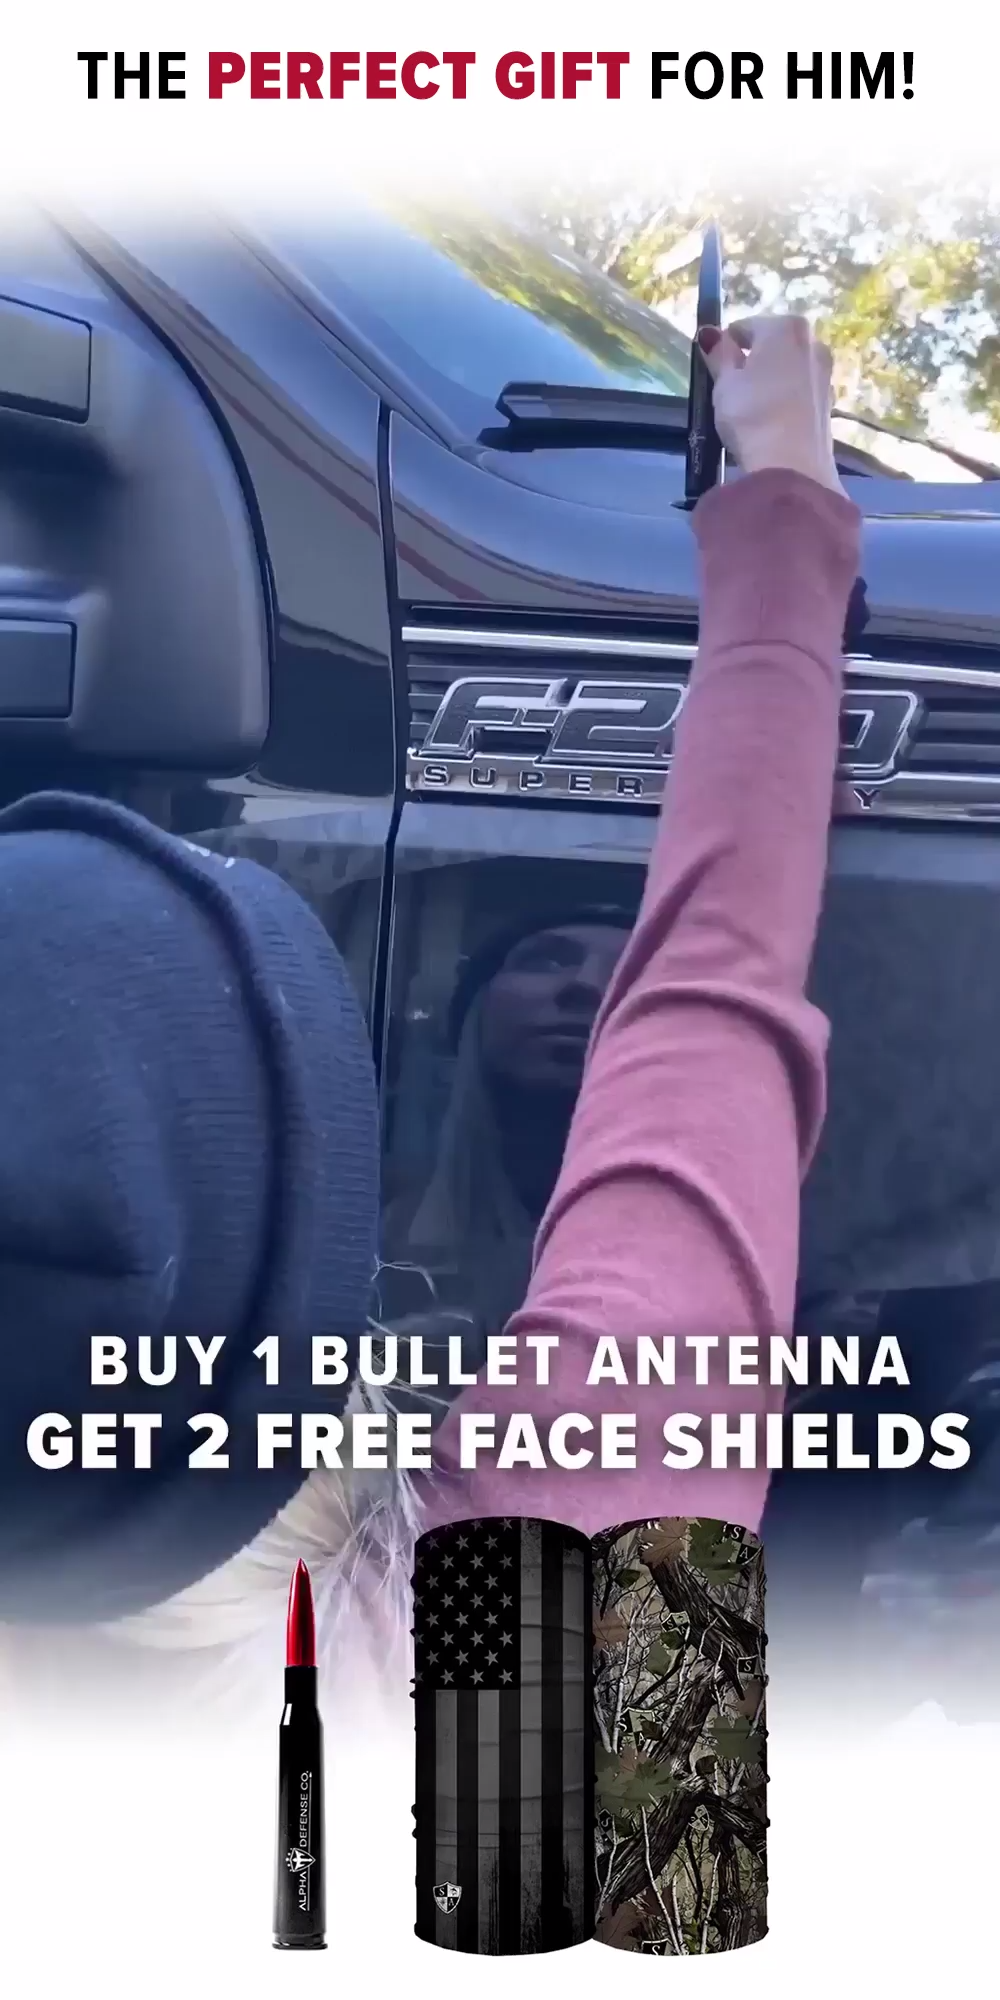 Upgrade Your Truck Antenna with the New Bullet Antenna Pack! Pick Any Bullet Antenna & Get 2 FREE Face Shields. Fits Any Truck or Jeep! Get Yours Today and Join the Alpha Squad!